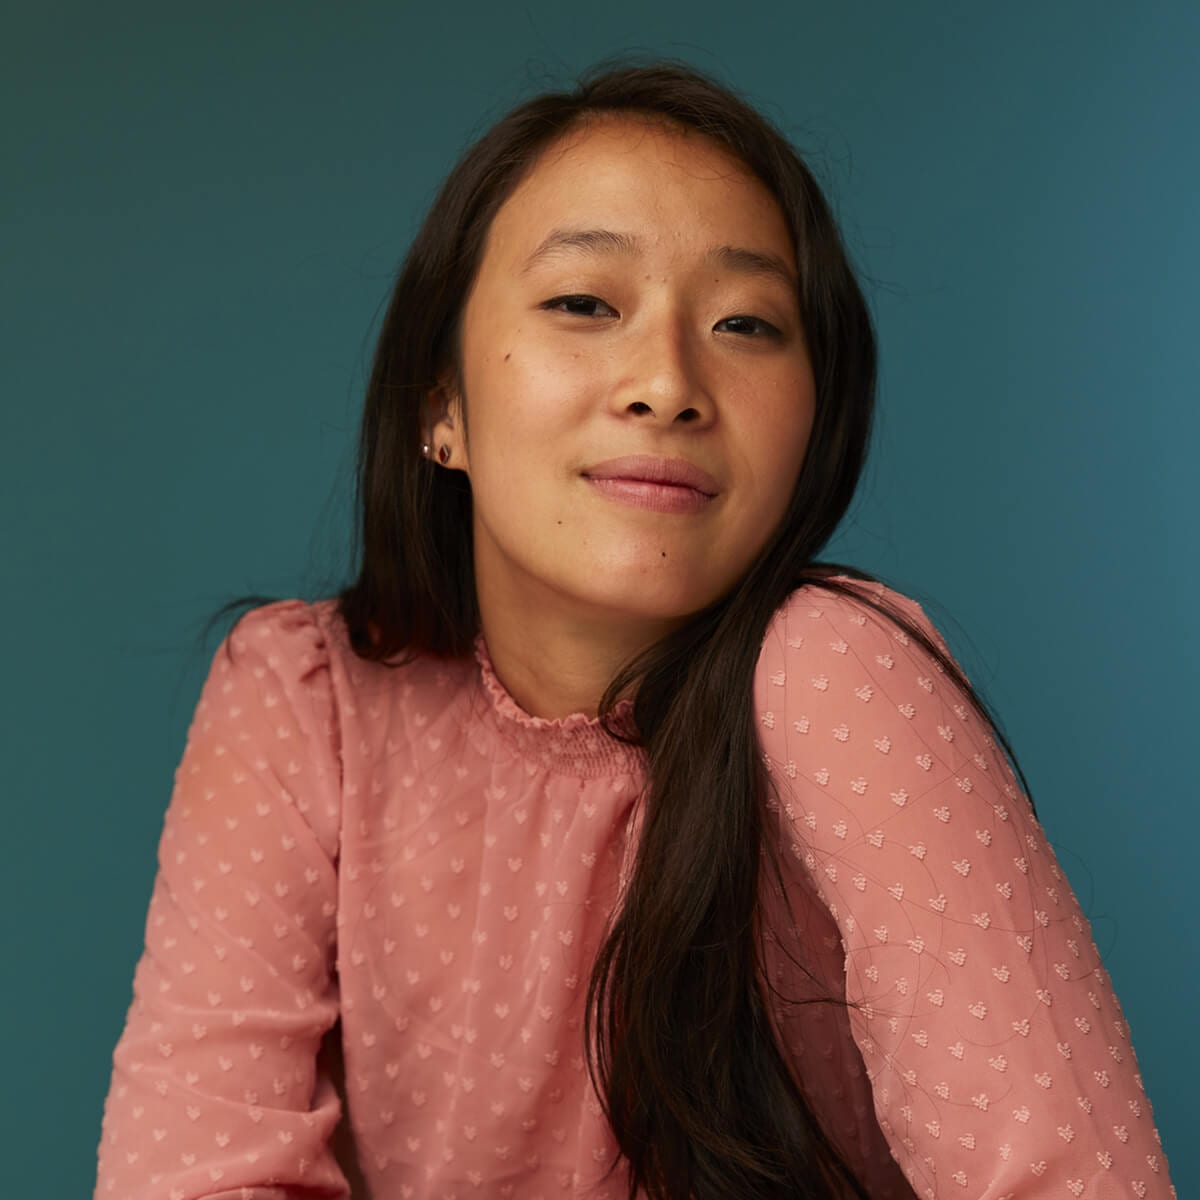 Menstrual Care for All: An Interview With PERIOD Founder Nadya Okamoto